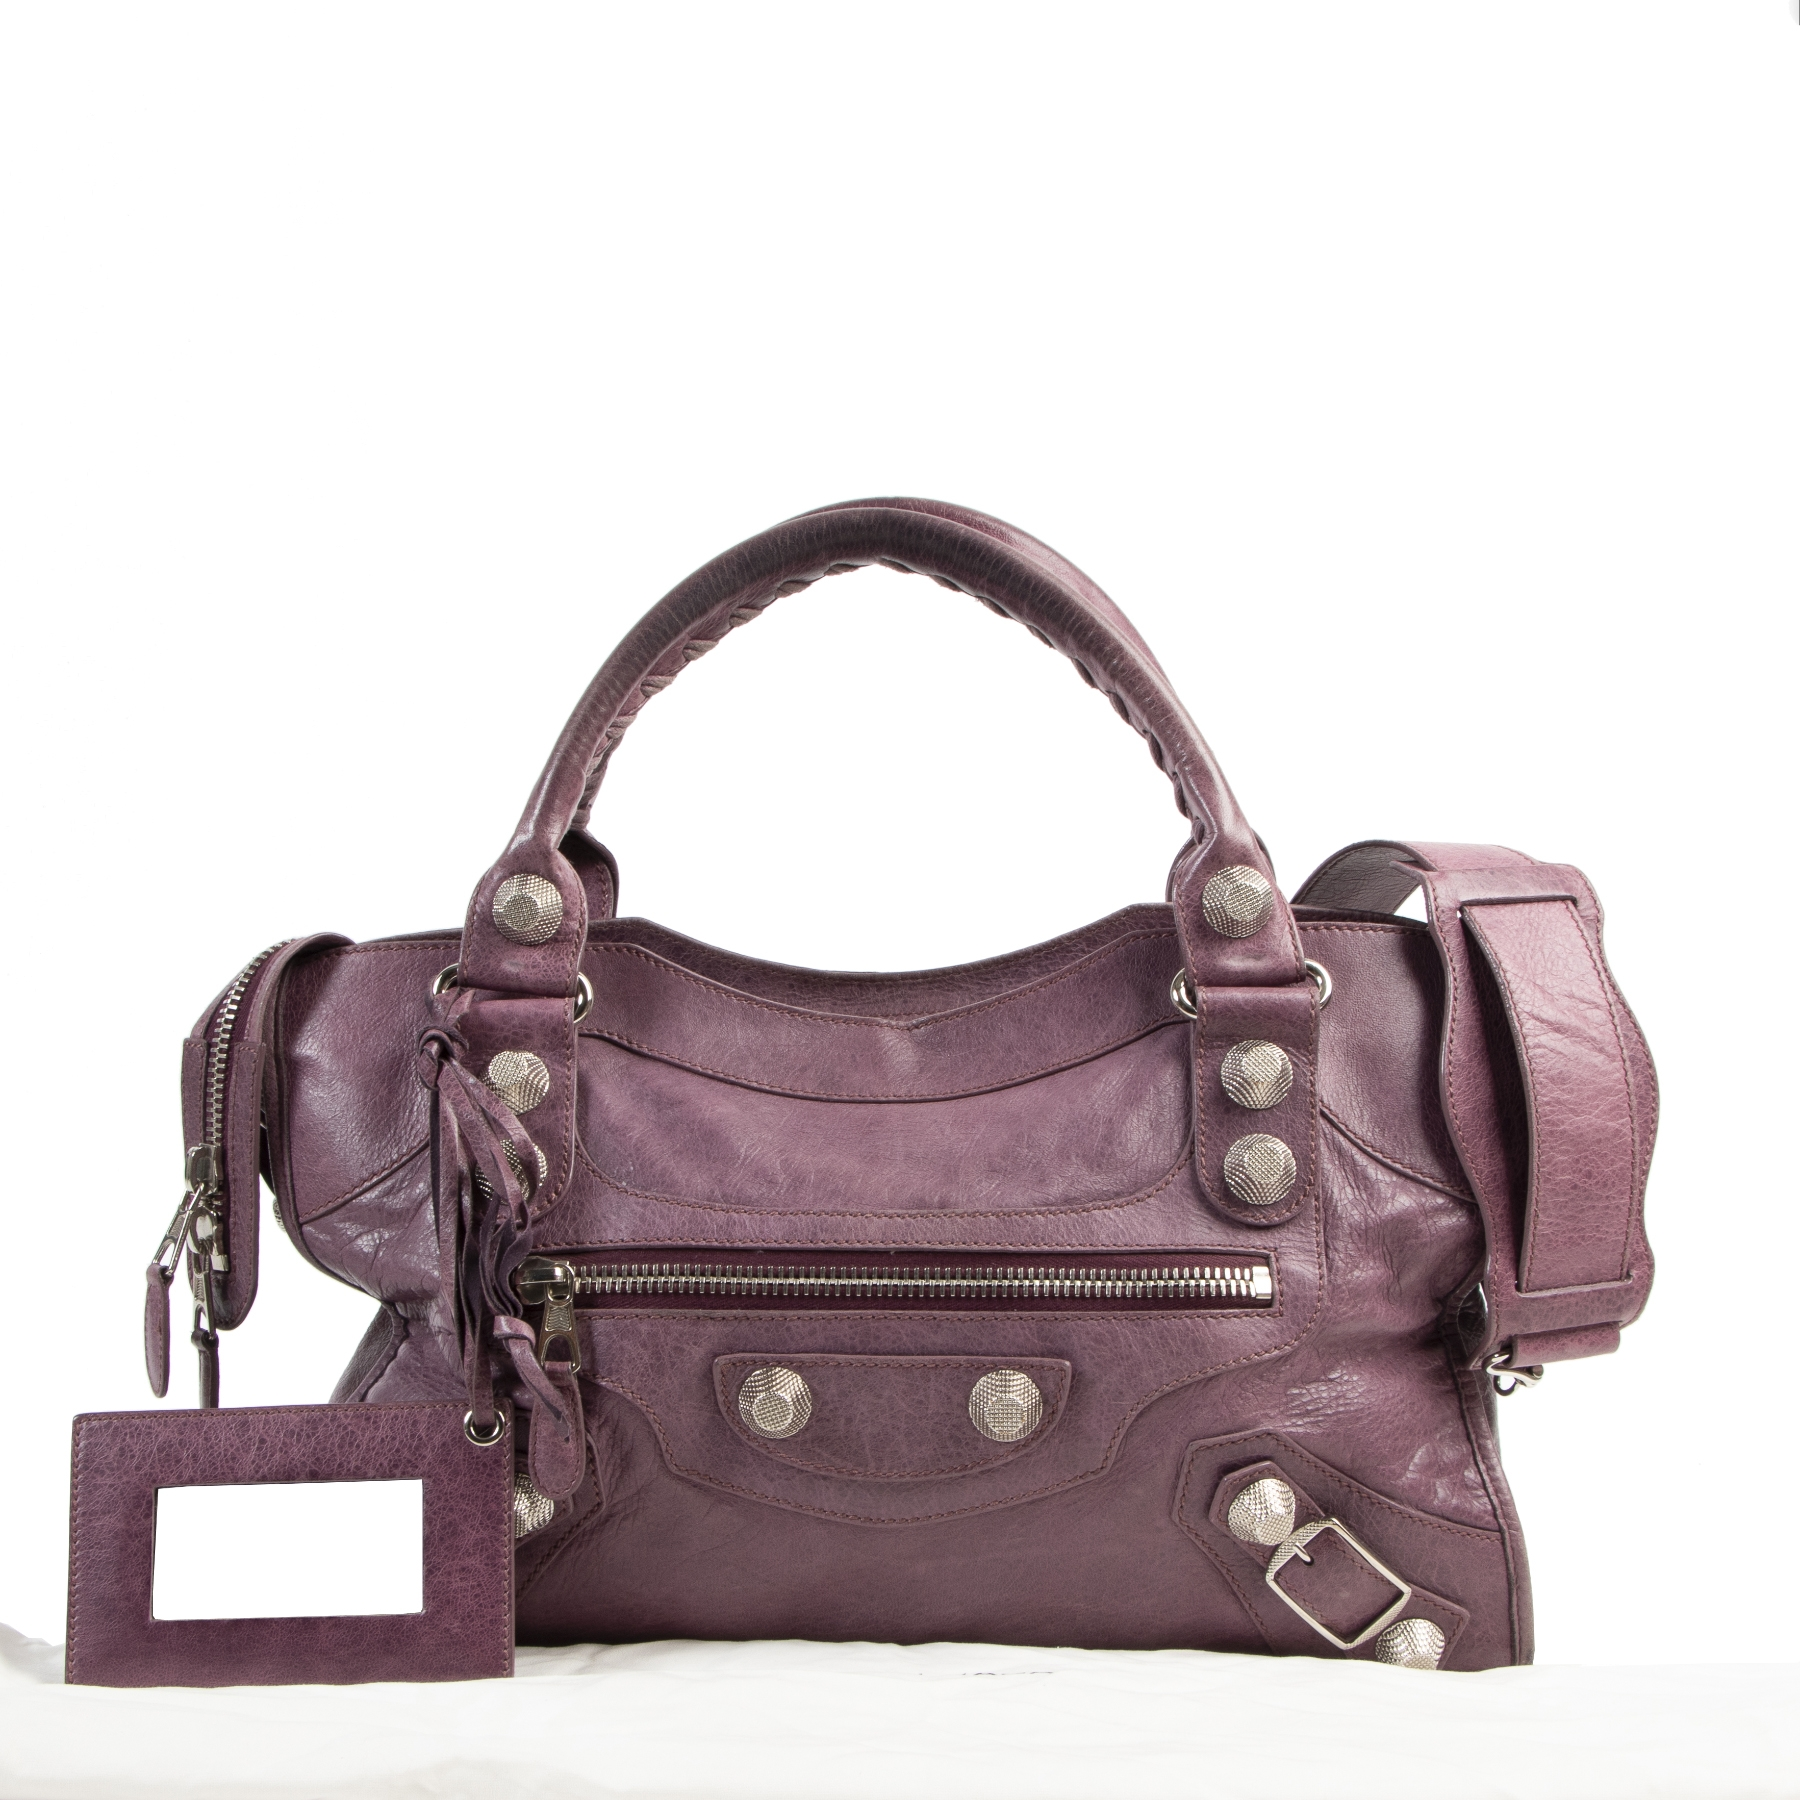 Balenciaga Purple Giant City PHW for the best price at Labellov secondhand luxury in Antwerp